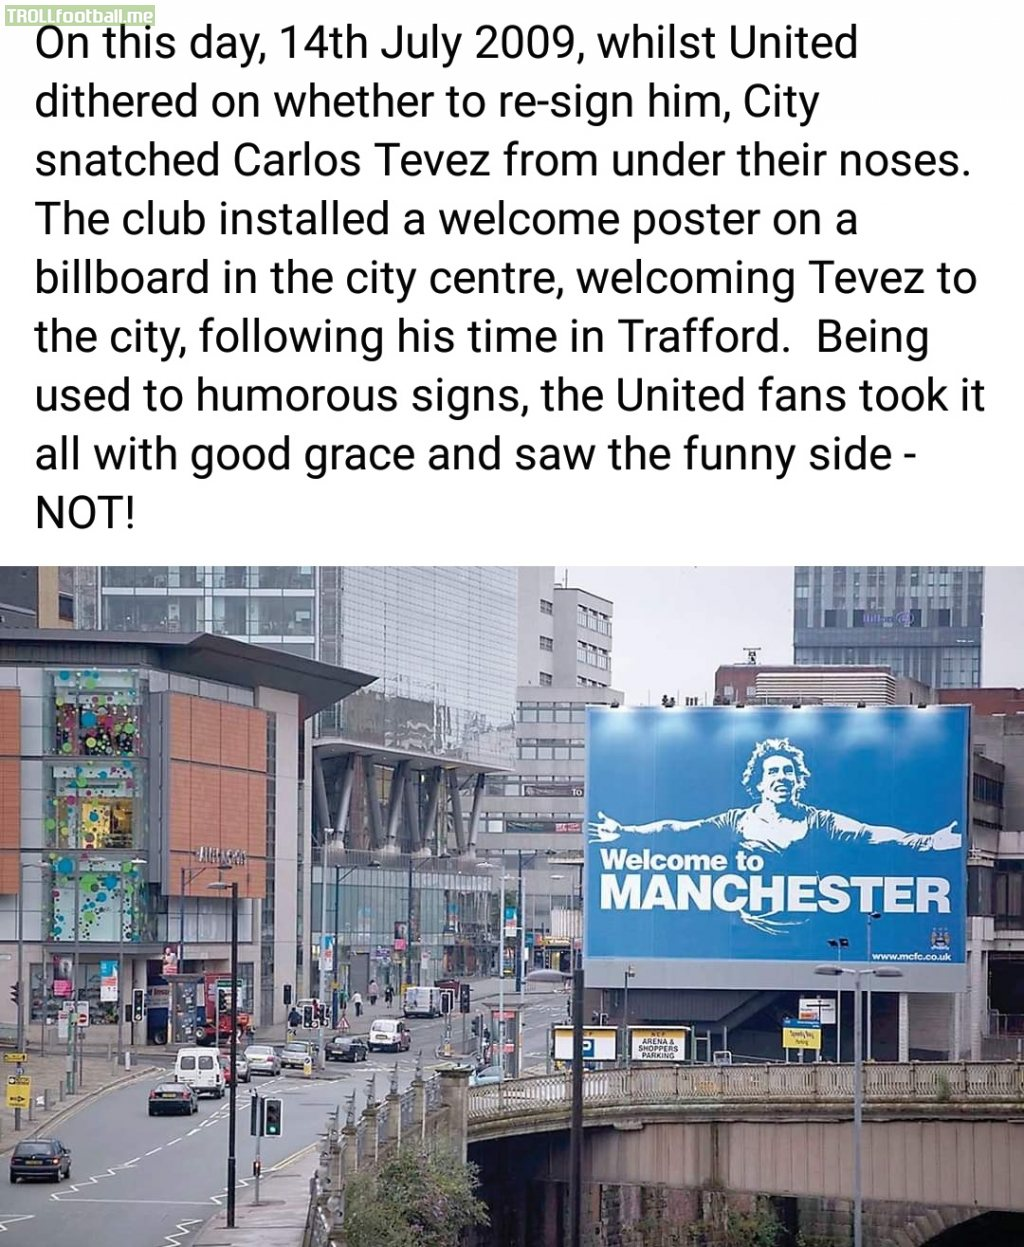 On this day 11 years ago, Carlos Tevez signed for Manchester City from Manchester United.